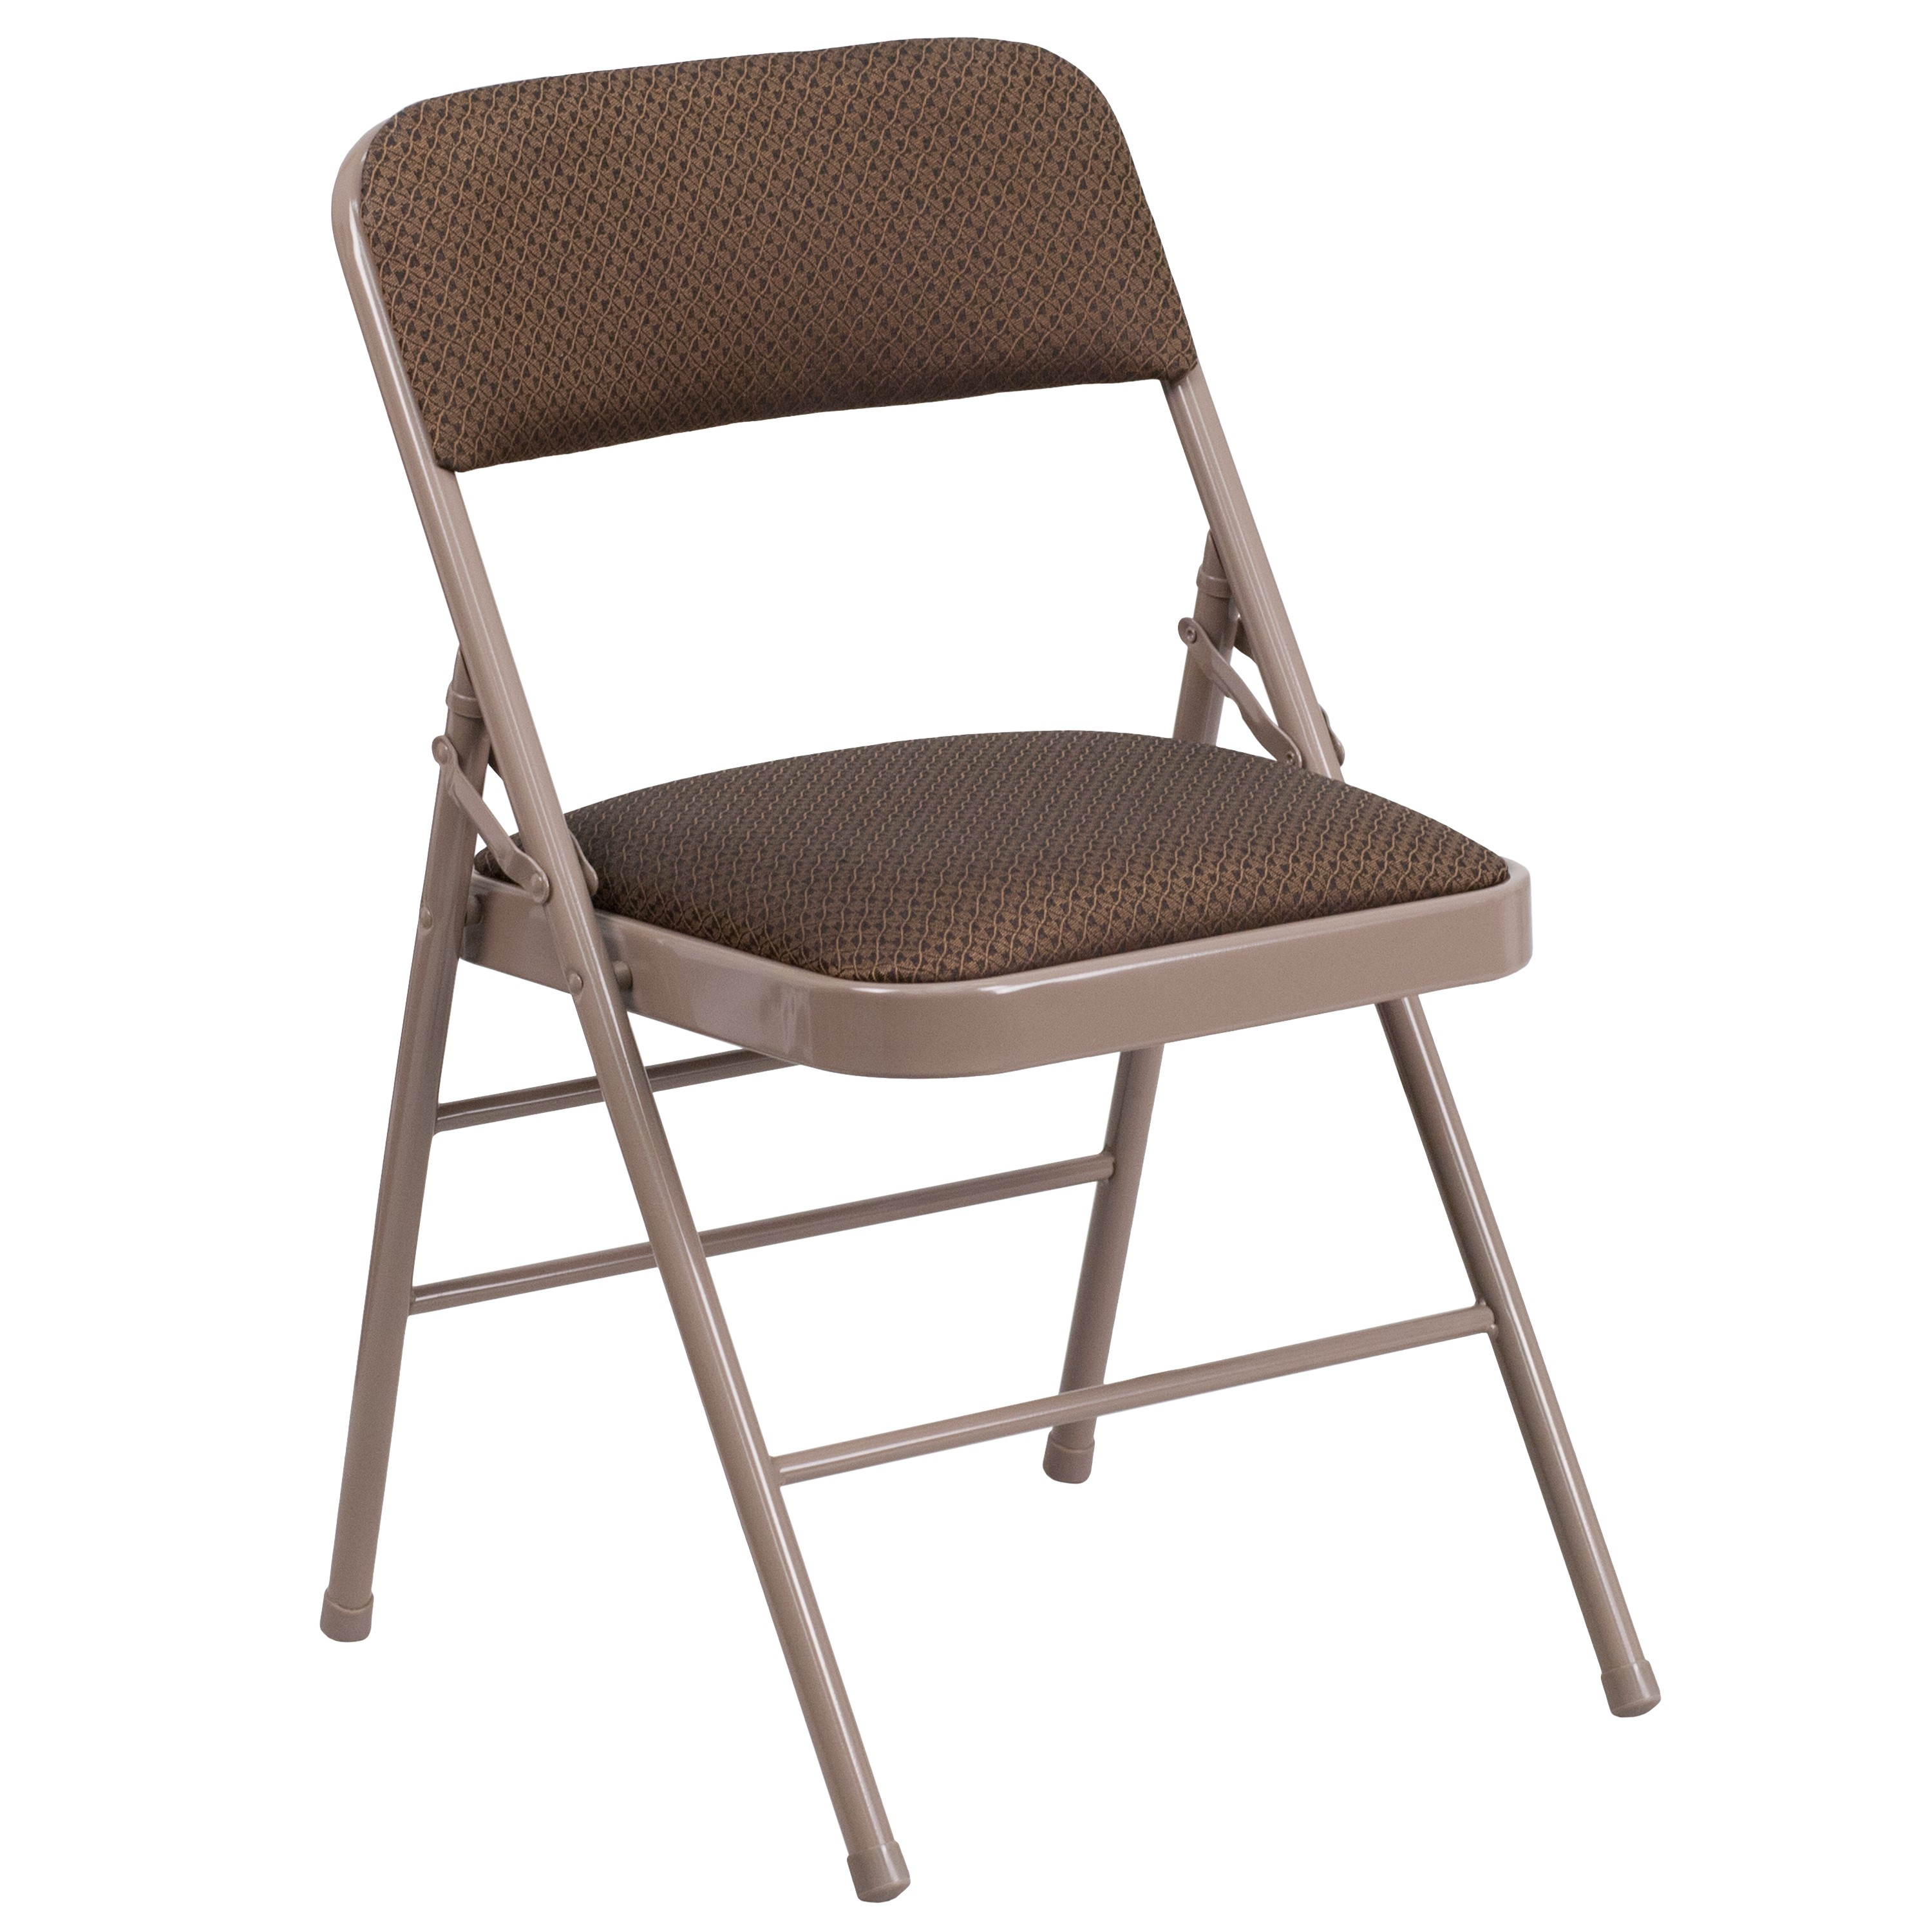 MFO Triple Braced Brown Fabric Upholstered Metal Folding Chair